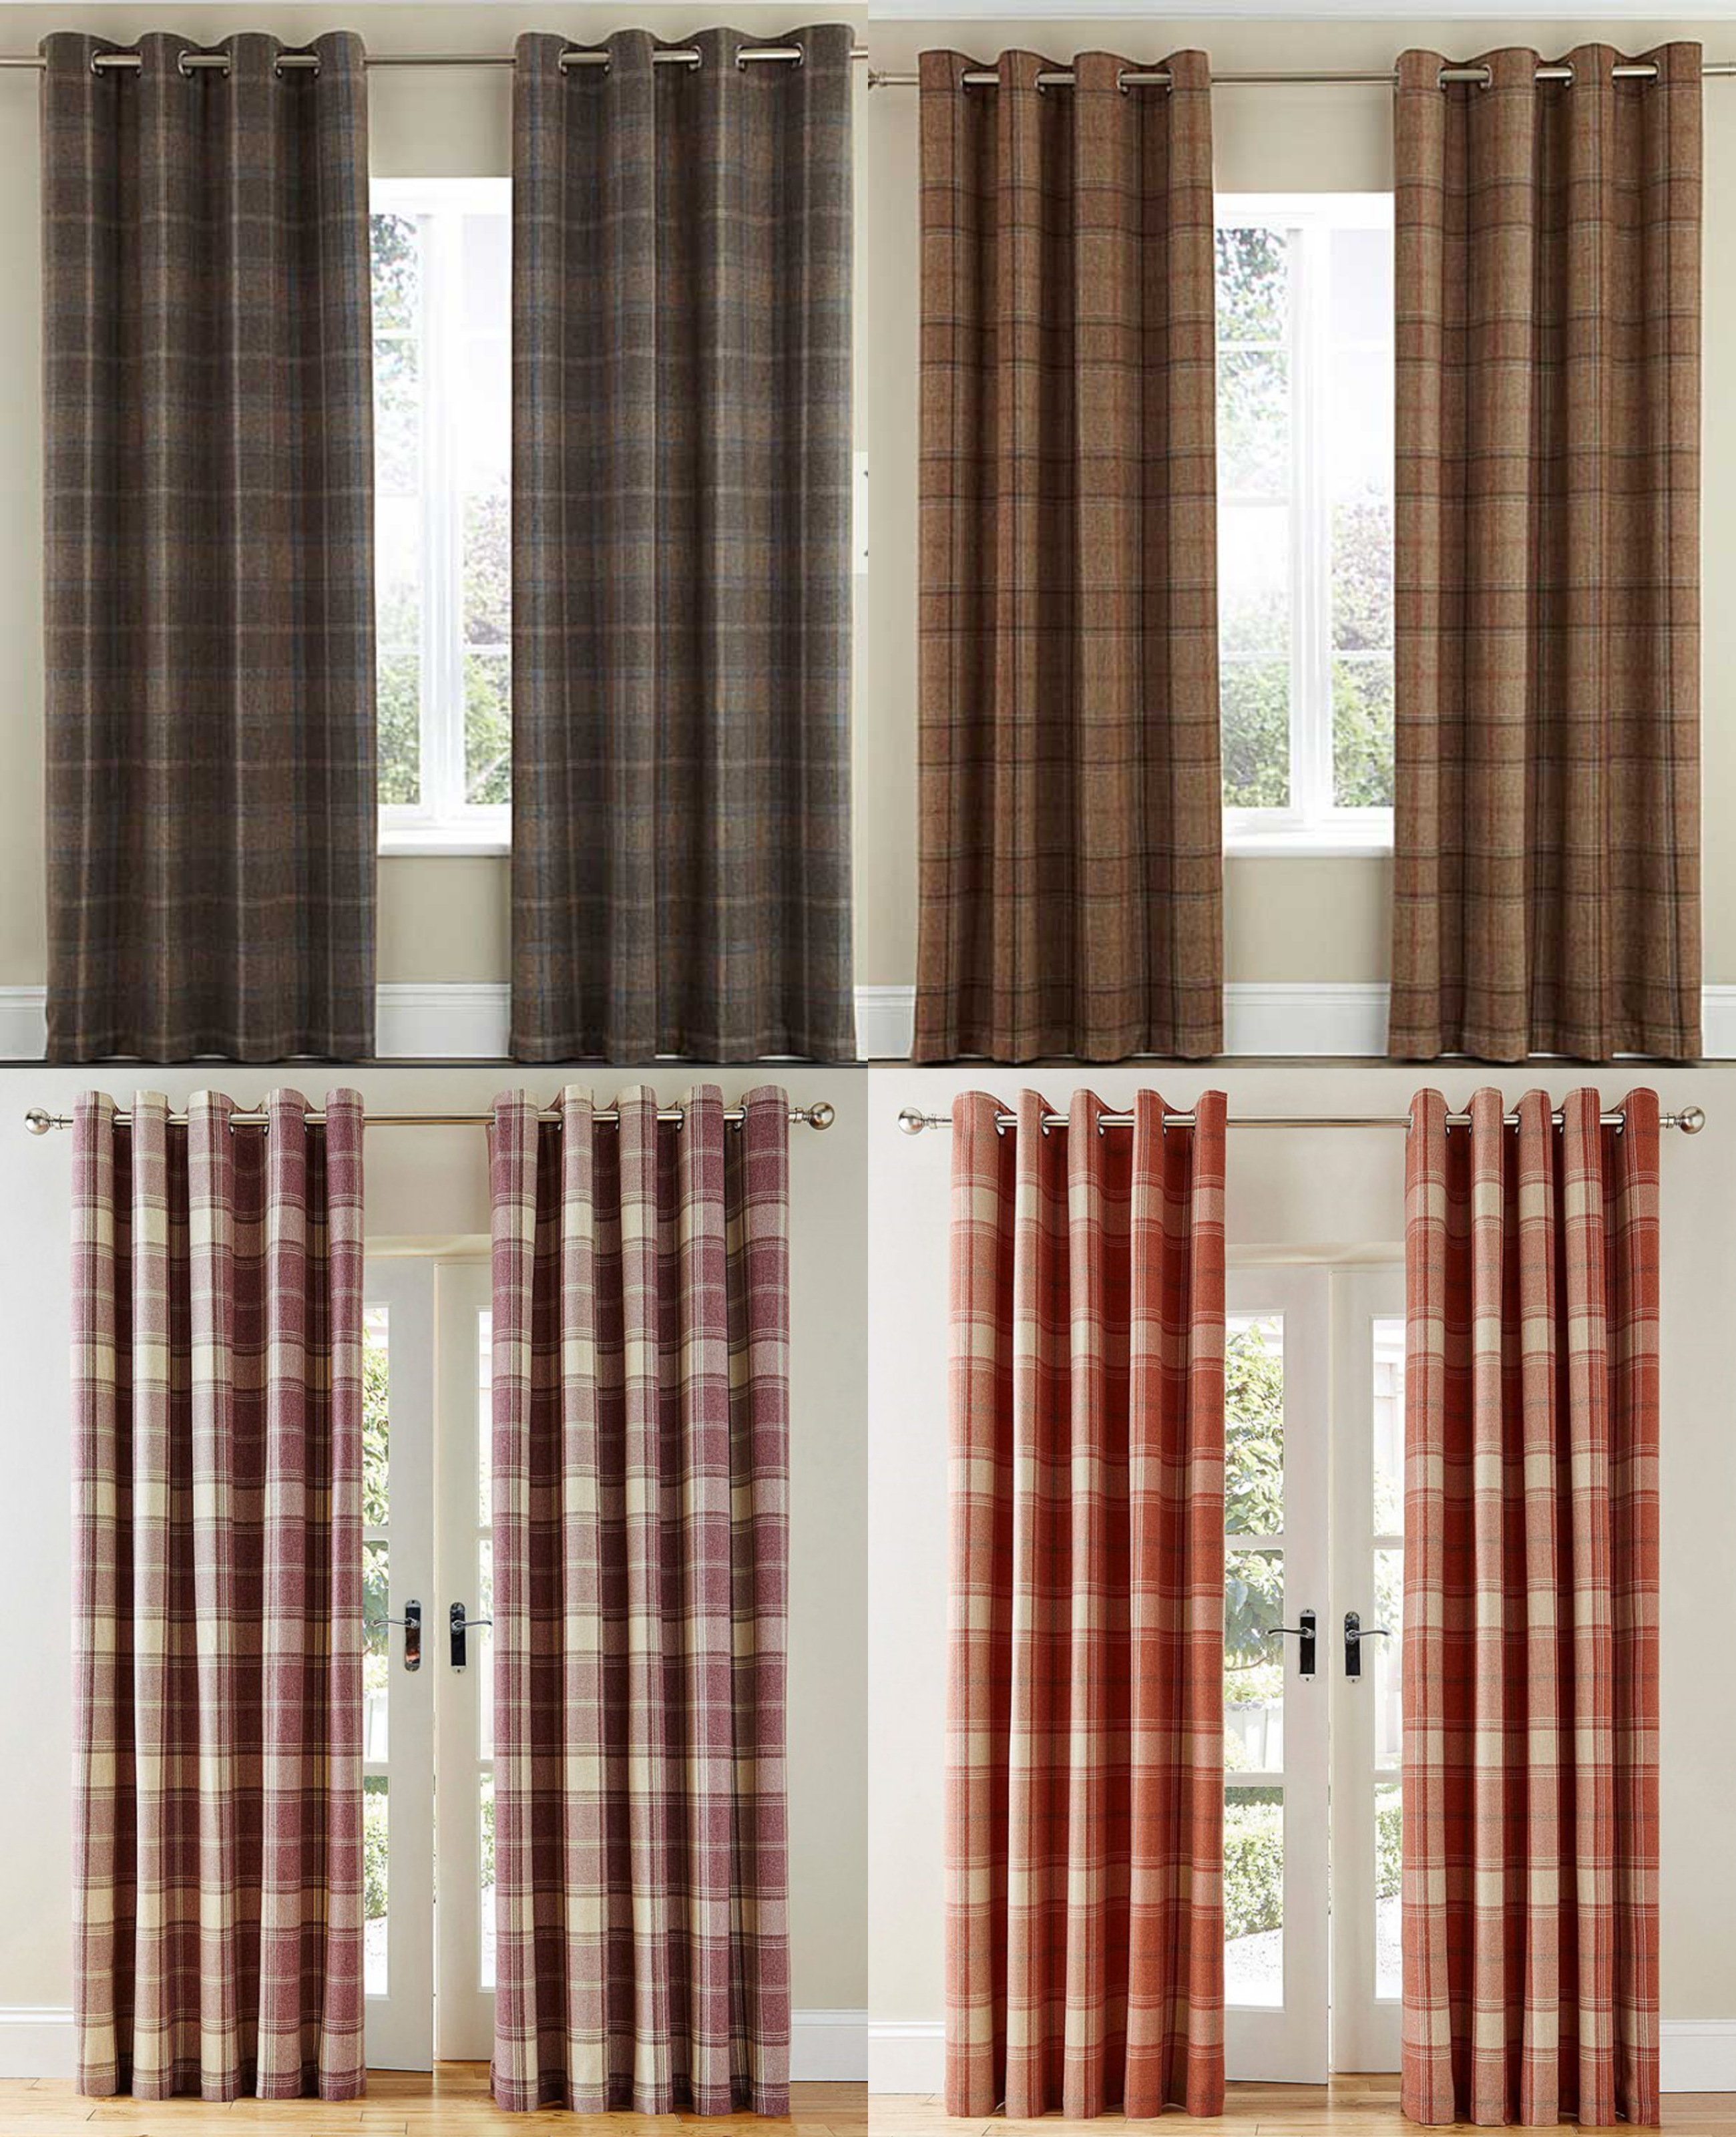 Good Quality Curtains Uk Part - 50: The Curtains Have A Tartan Checked Design On A Quality Wool Effect Finish.  The Curtains